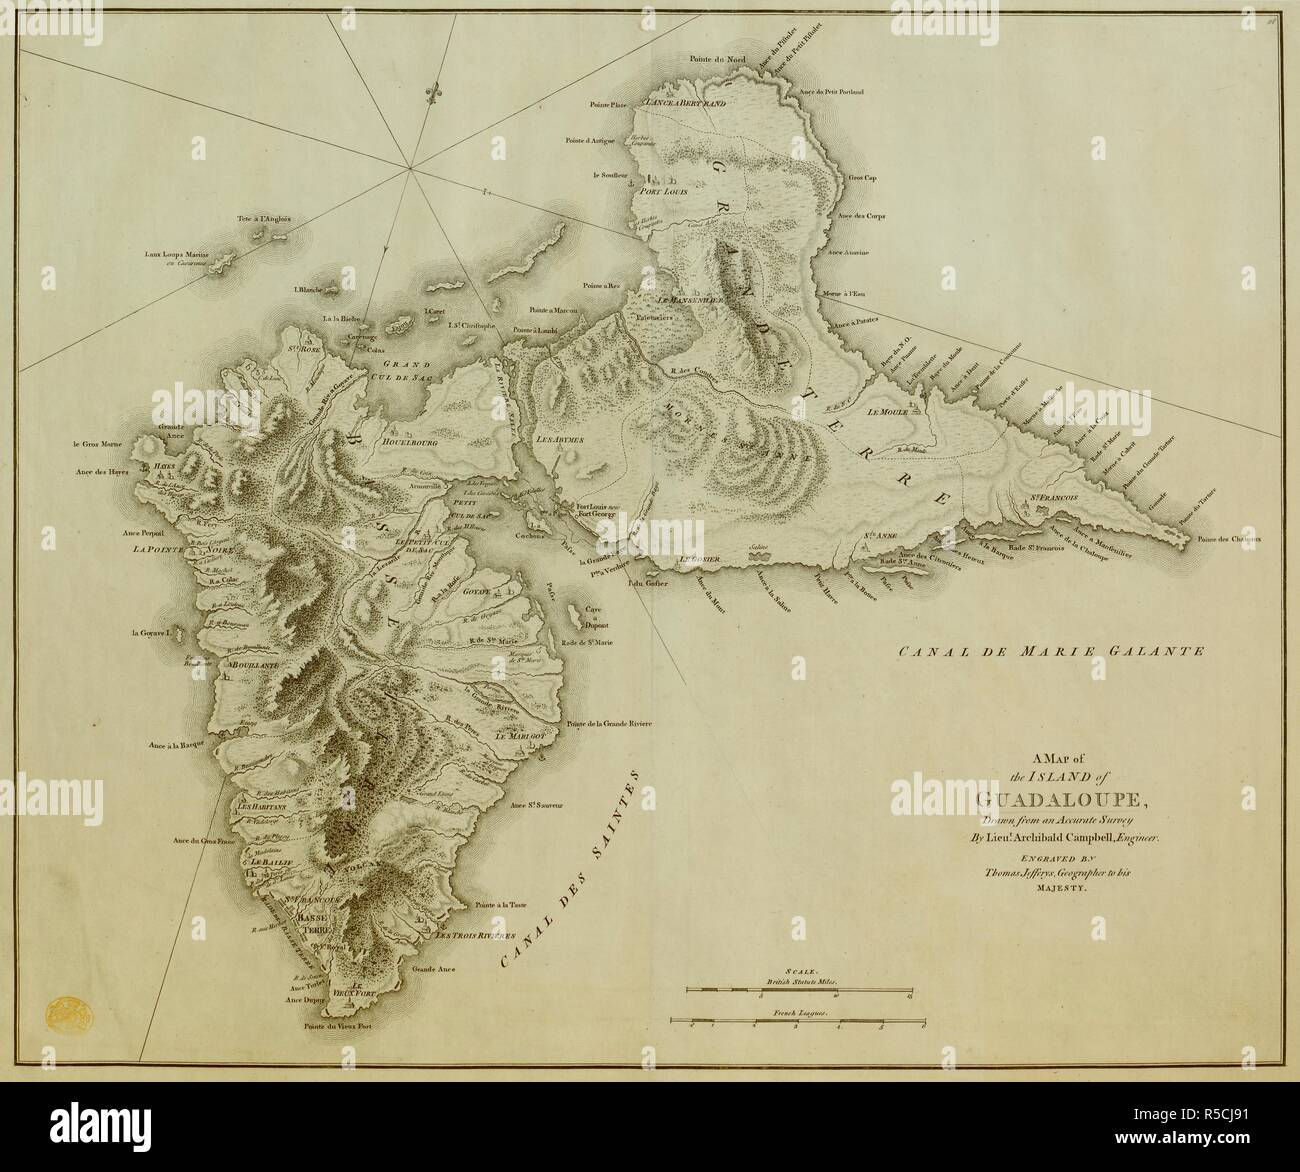 Campbell Map Stock Photos Images Alamy Engineer Scale Diagram A Of Guadeloupe The Island Guadaloupe Drawn From An